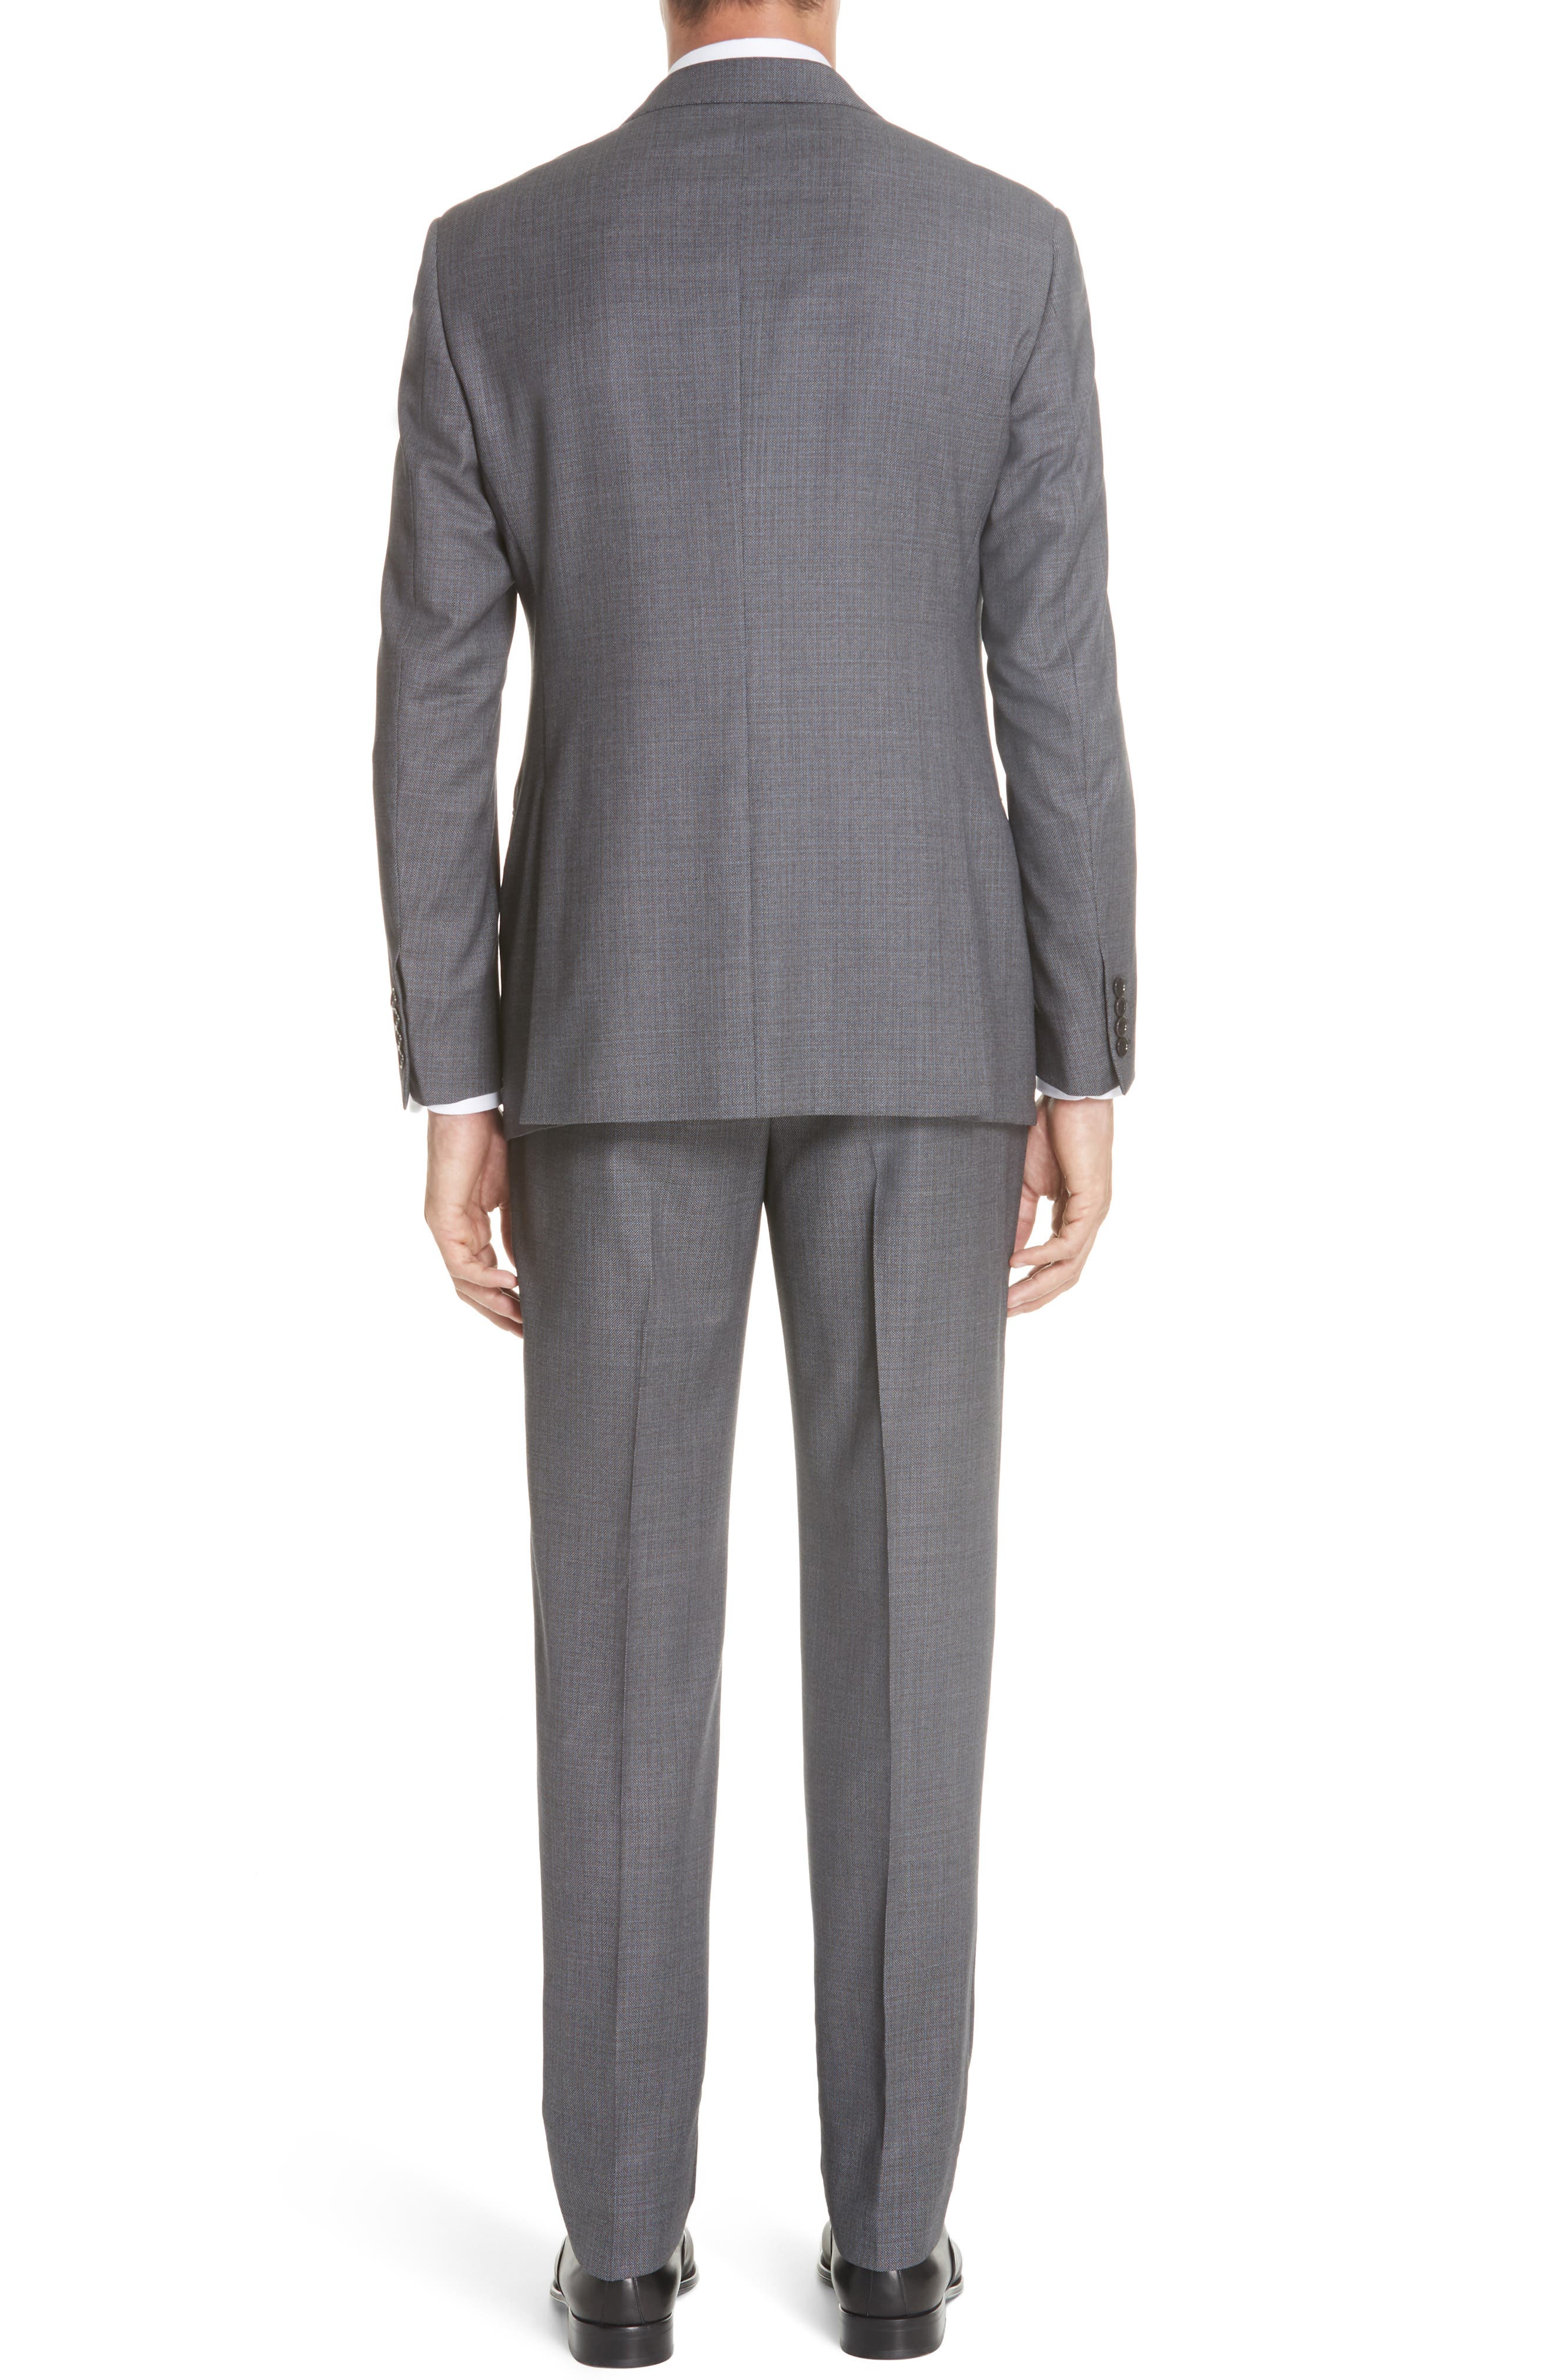 G-Line Trim Fit Bird's Eye Wool Suit,                             Alternate thumbnail 2, color,                             GREY/ LIGHT BLUE